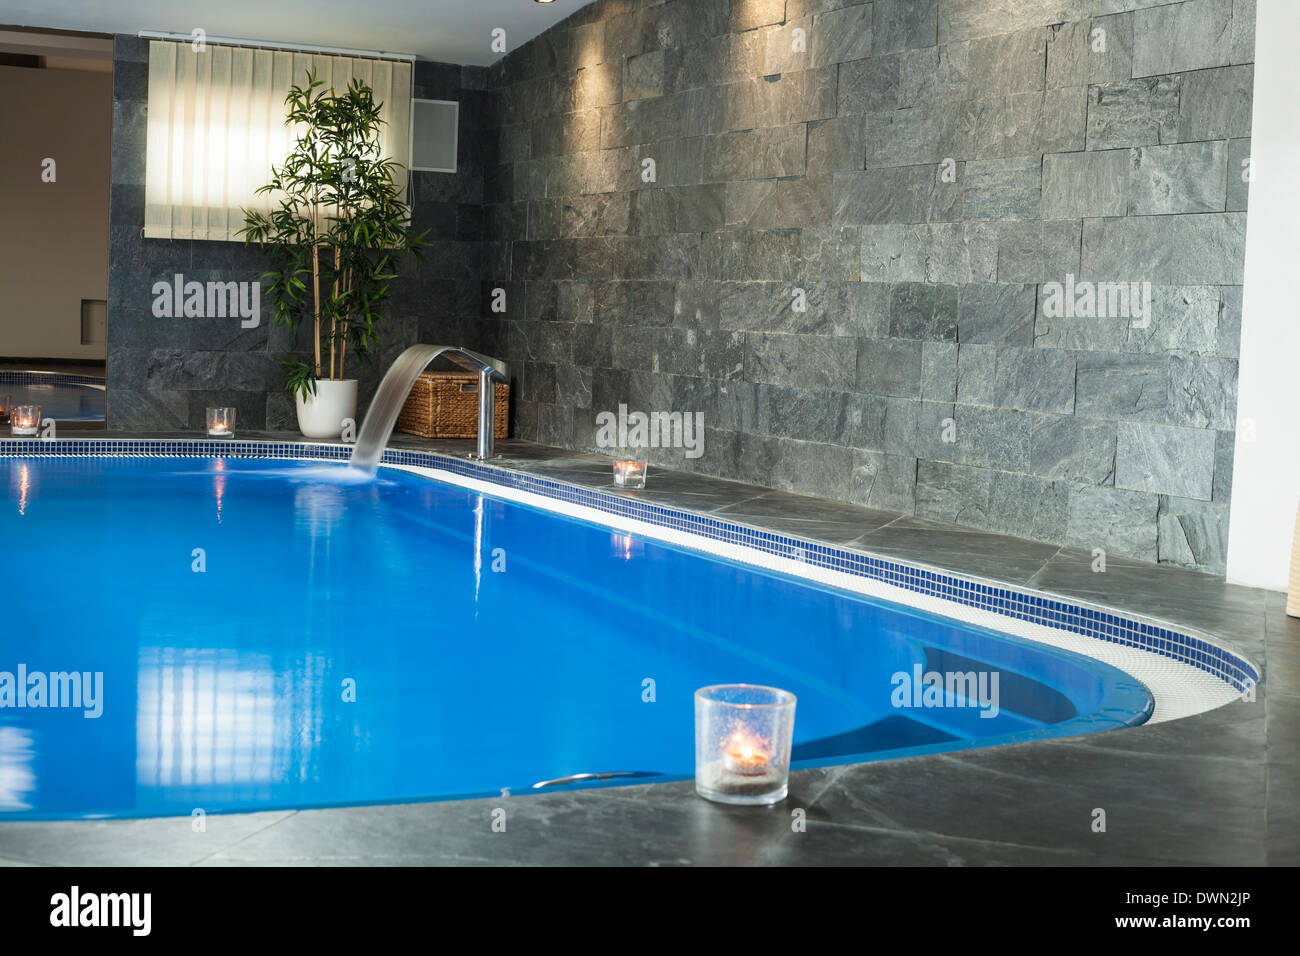 Interior of wellness and spa swimming pool. Stock Photo